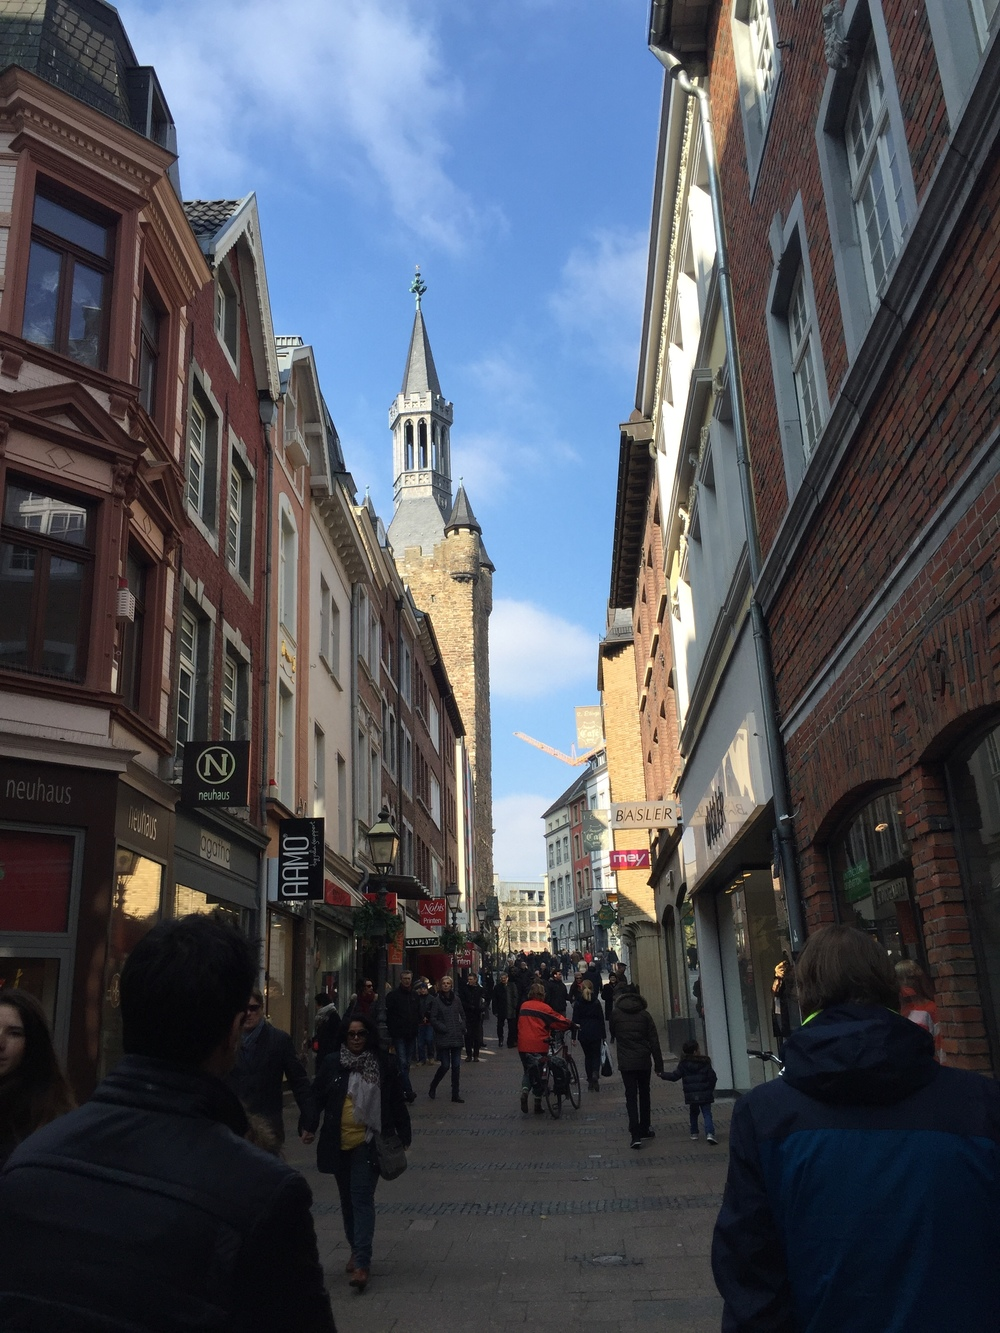 So many beautiful, sunny days in Aachen! Unfortunately, we're back to cold and rainy for the time being.